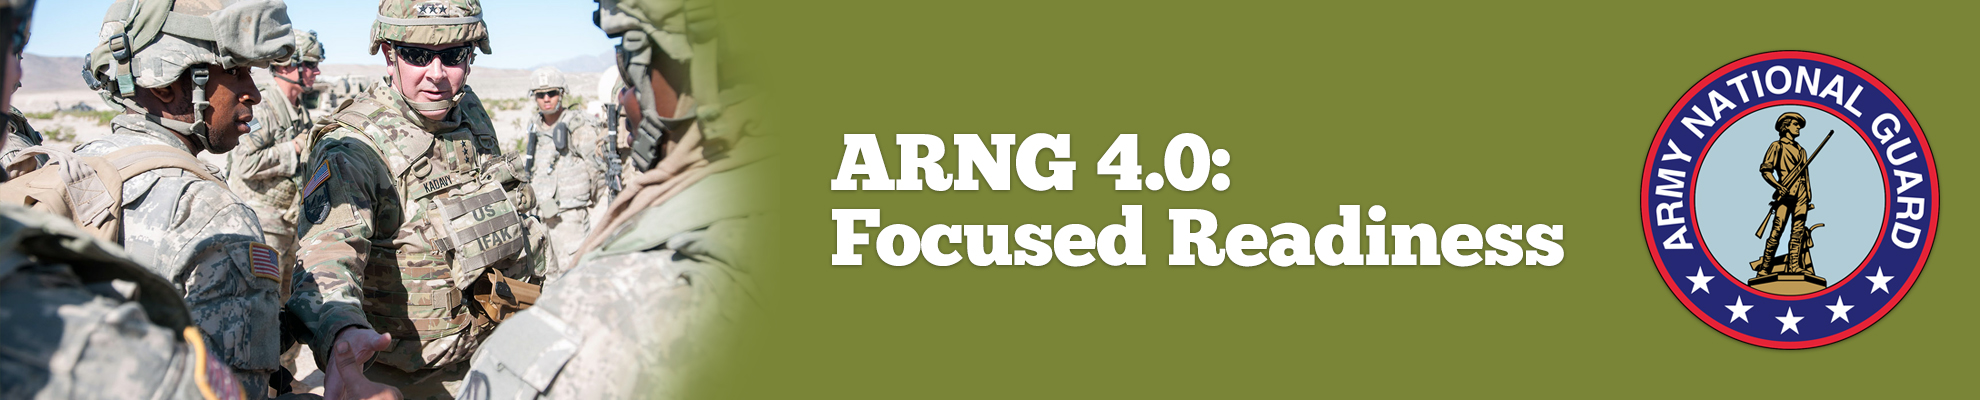 ARNG 4.0: Focused Readiness